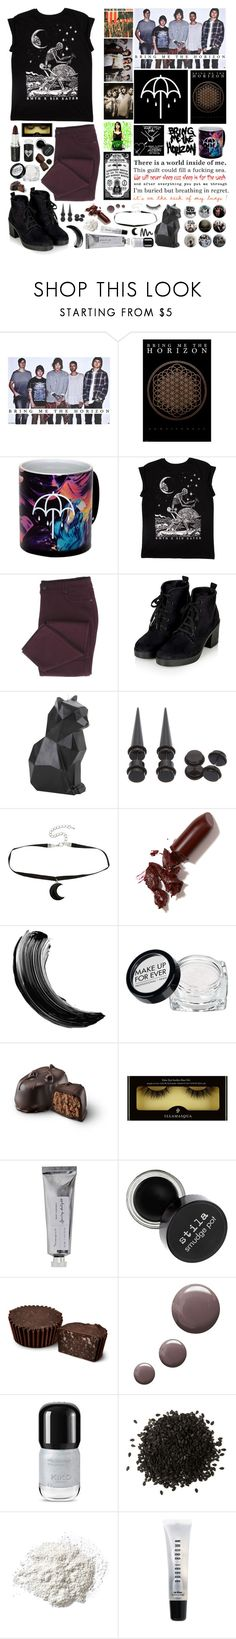 """Bring Me The Horizon"" by xnightelsax ❤ liked on Polyvore featuring Hot Topic, LAQA & Co., Maybelline, MAKE UP FOR EVER, Bloomingville, Topshop, NYX, Ilia and Bobbi Brown Cosmetics"